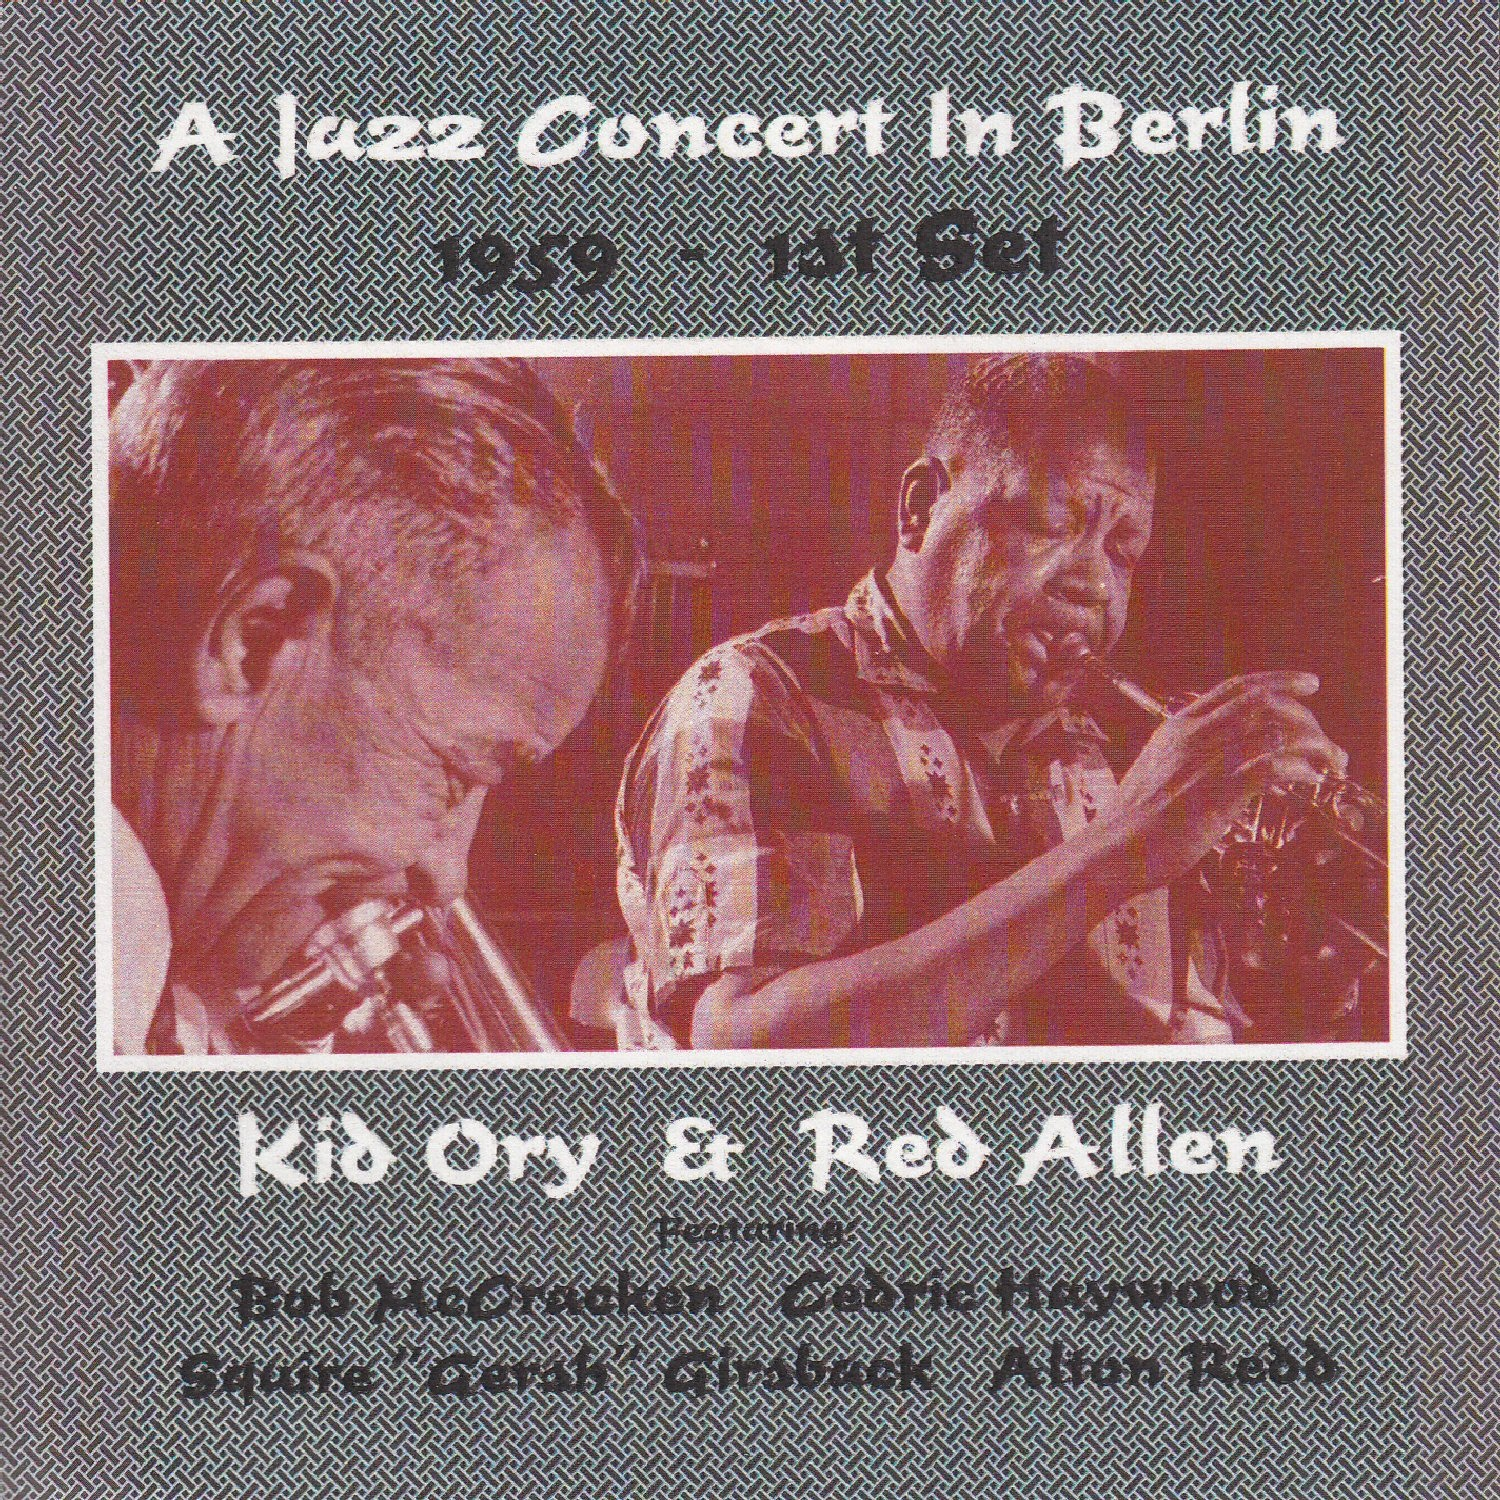 A Jazz Concert in Berlin 1959: 1st Set (feat. Bob Mccracken, Cedric Haywood, Squire 'Gersh' Girsbeck & Alton Reed)